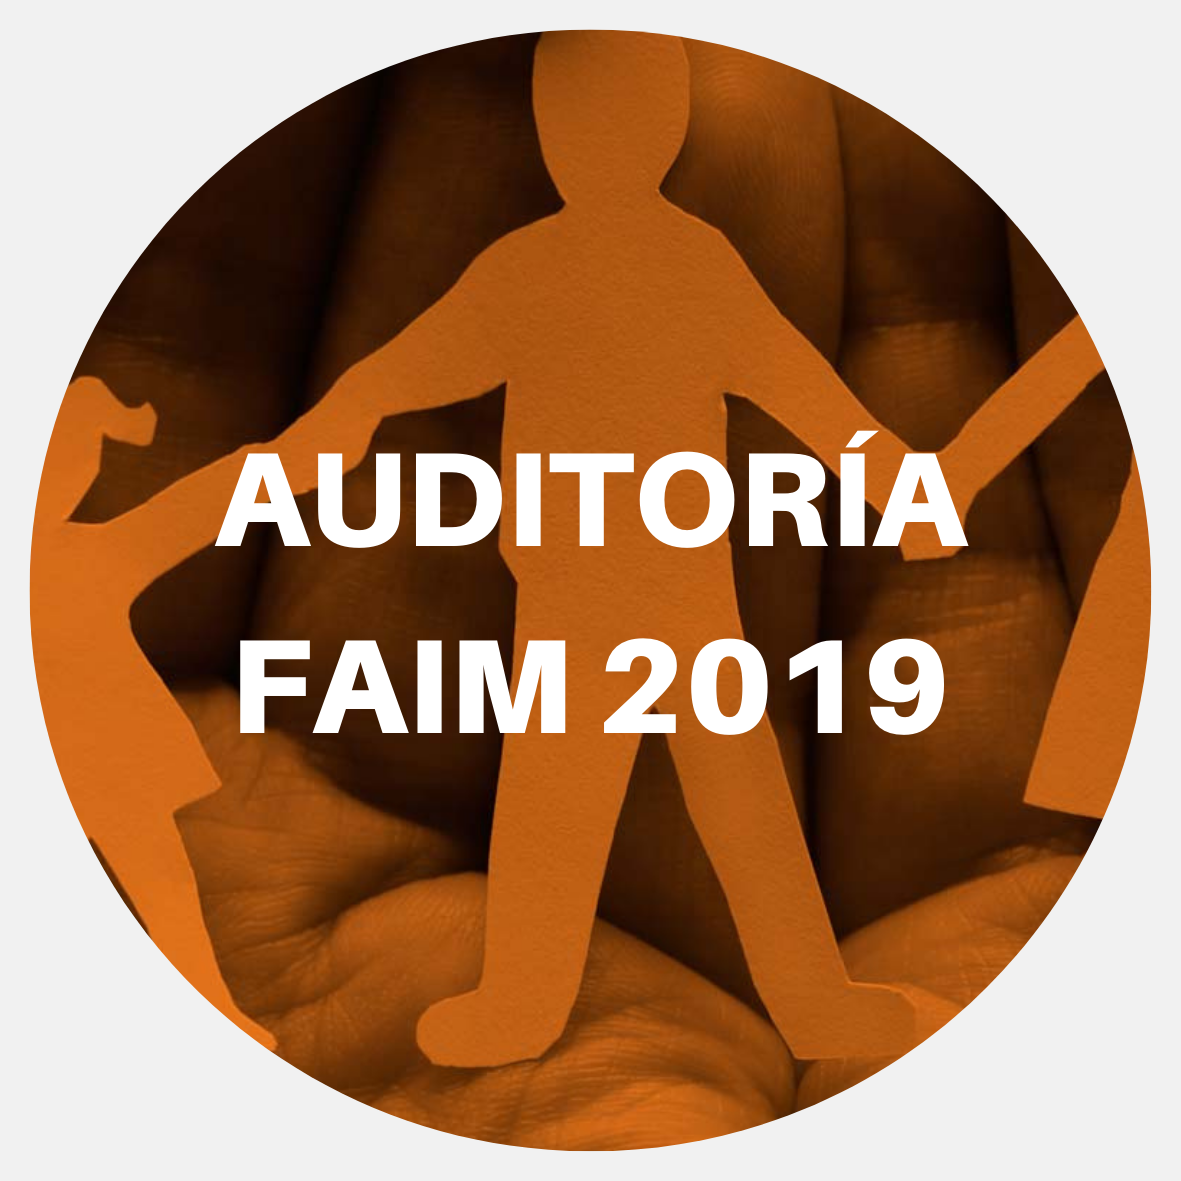 auditoria FAIM 2019